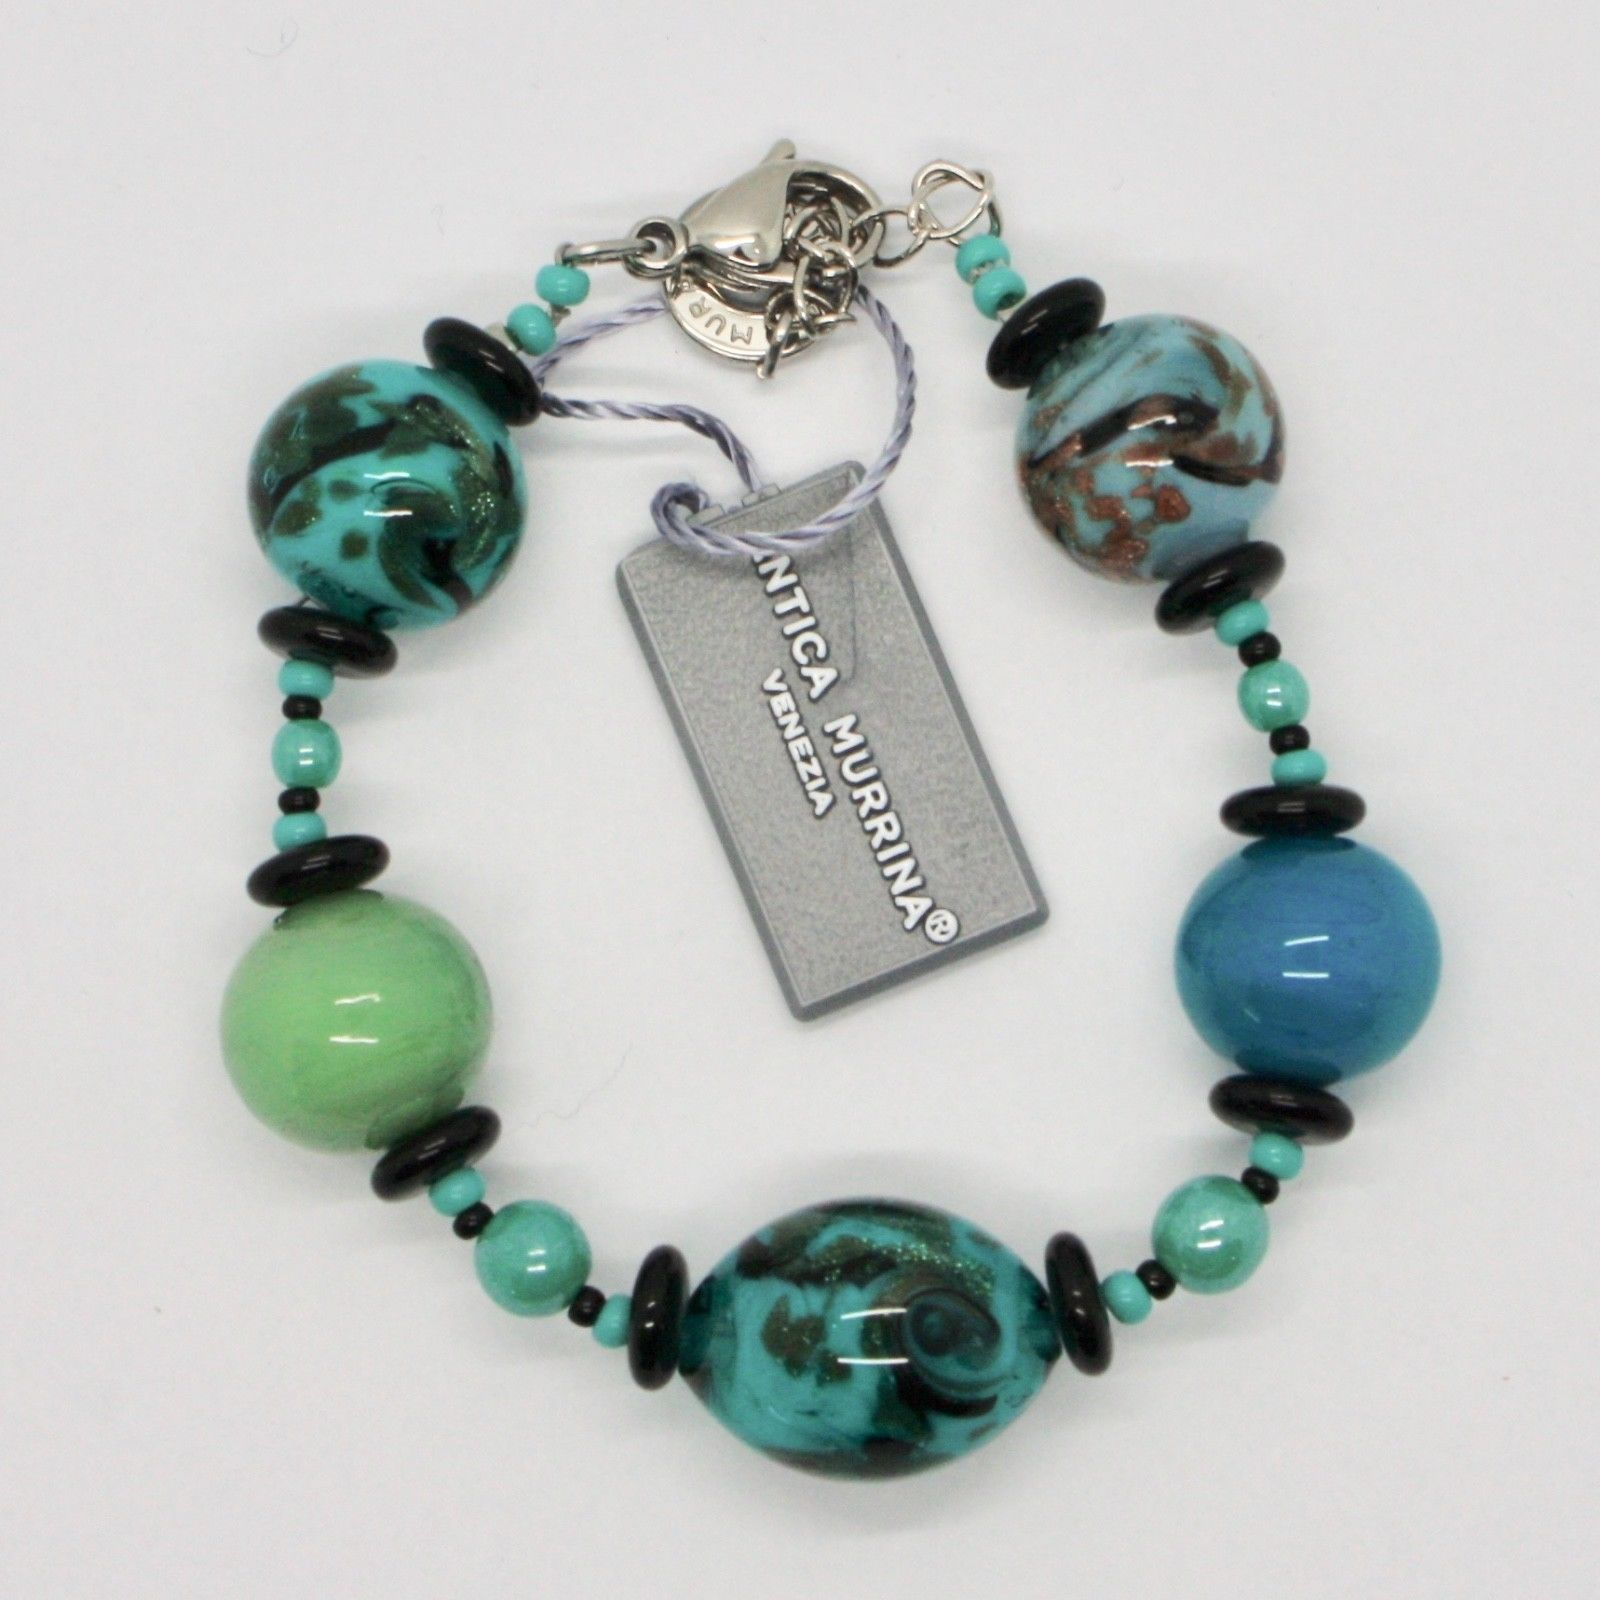 BRACELET ANTICA MURRINA VENEZIA WITH MURANO GLASS BLACK AND TURQUOISE BR801A59